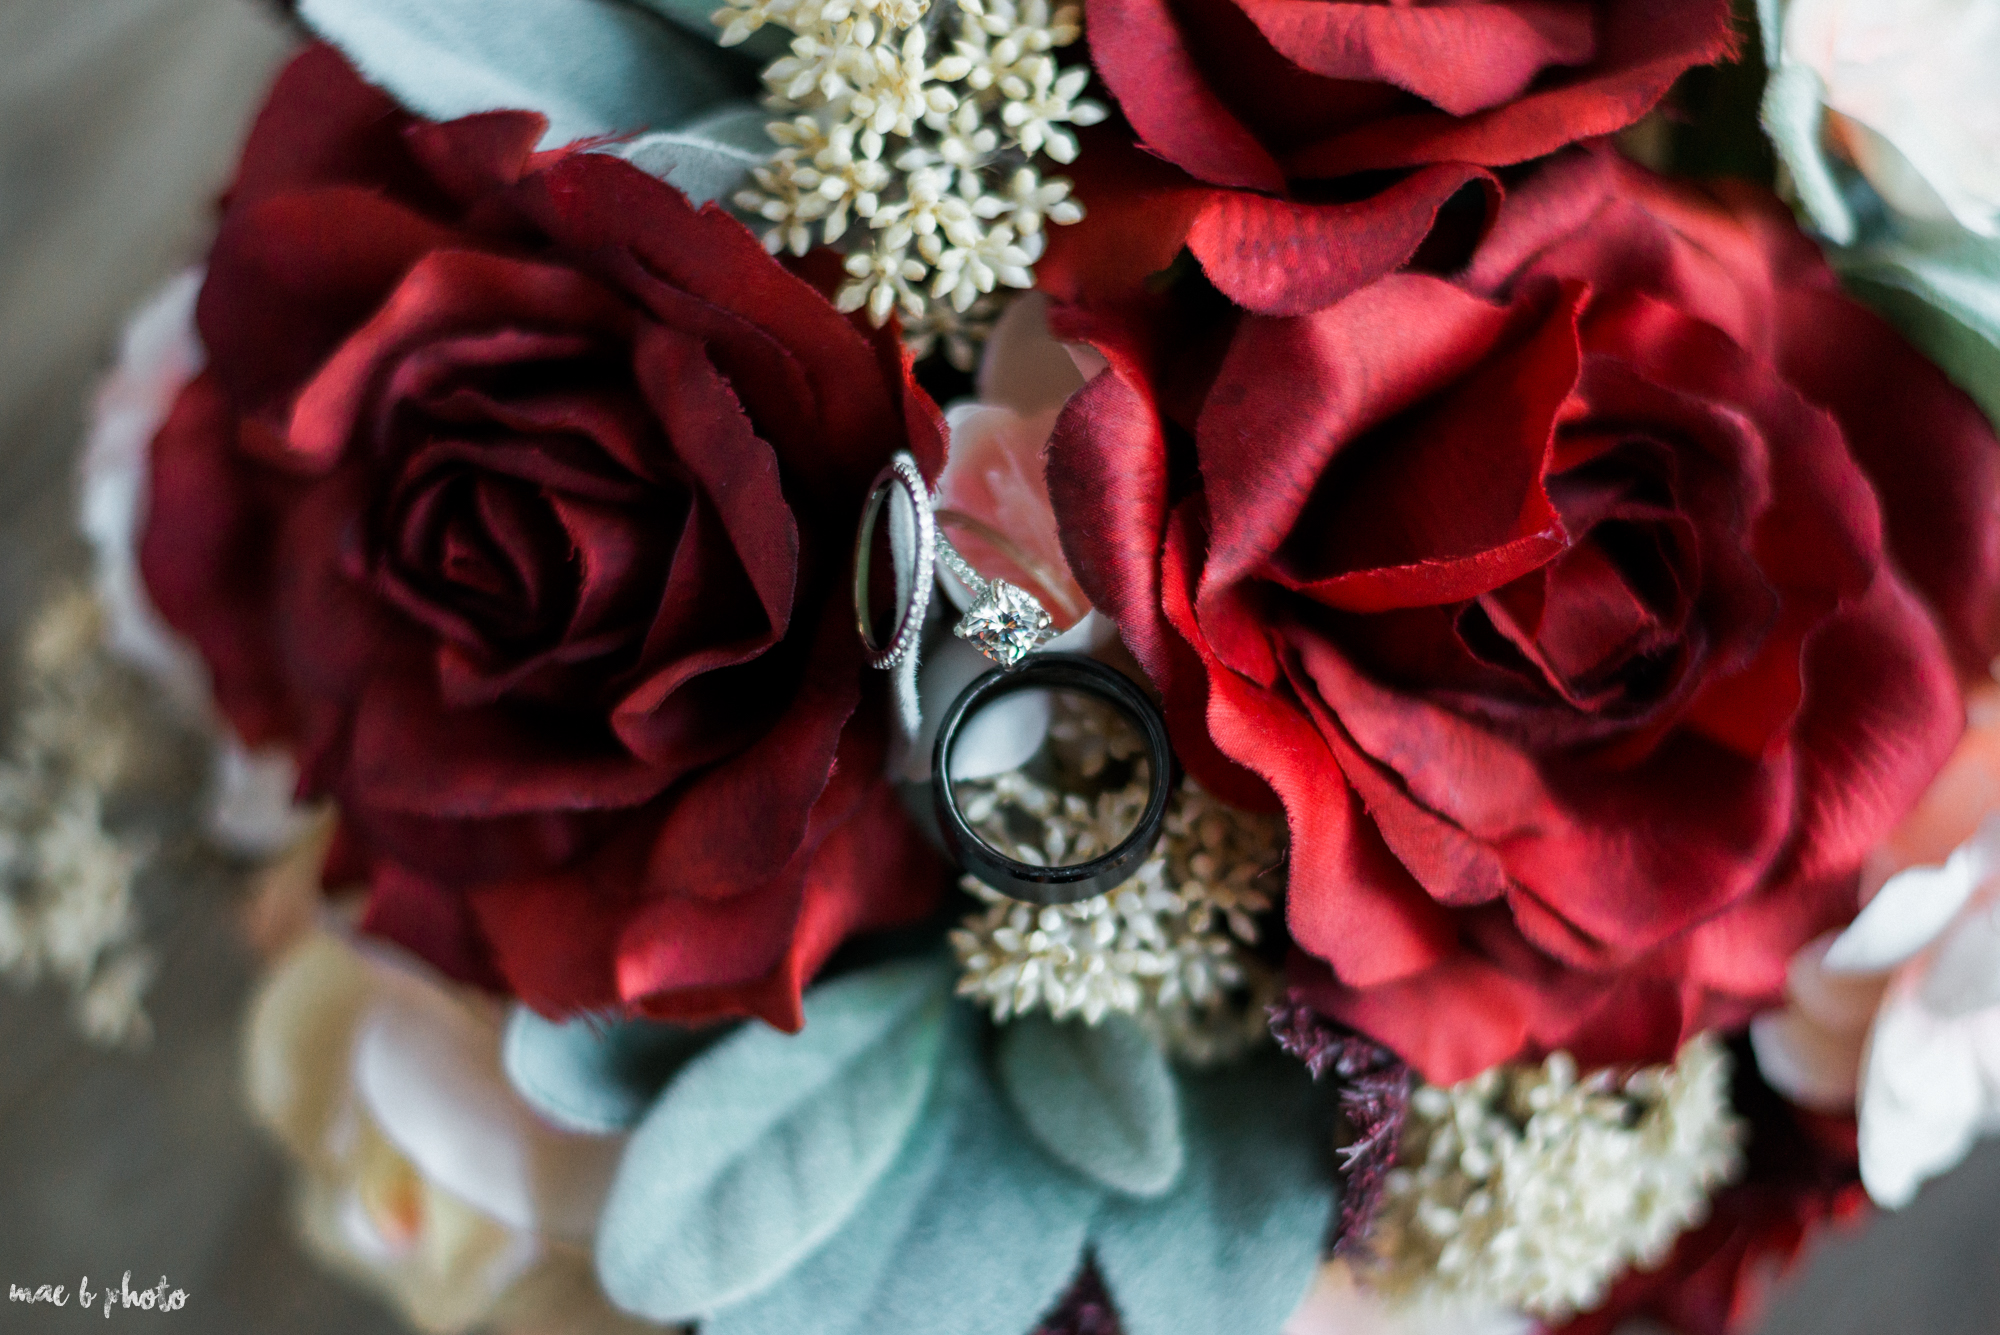 Amber & Kyle's Rustic Barn Wedding at SNPJ in Enon Valley, PA by Mae B Photo-85.jpg